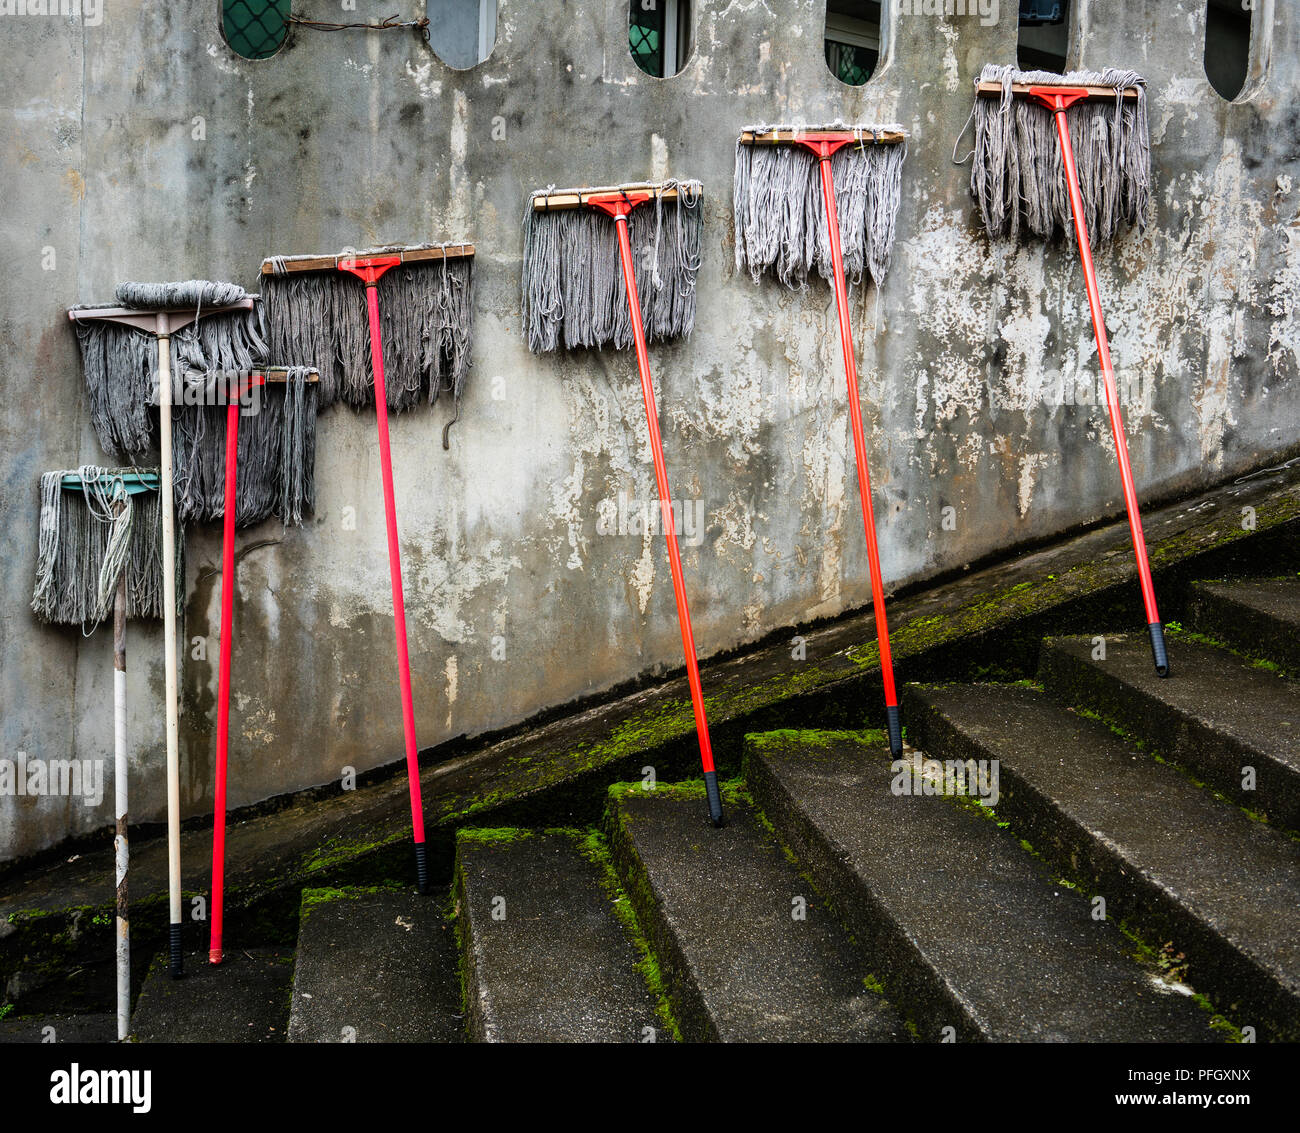 Several mops against a dirty old wall : spring cleaning concept - Stock Image